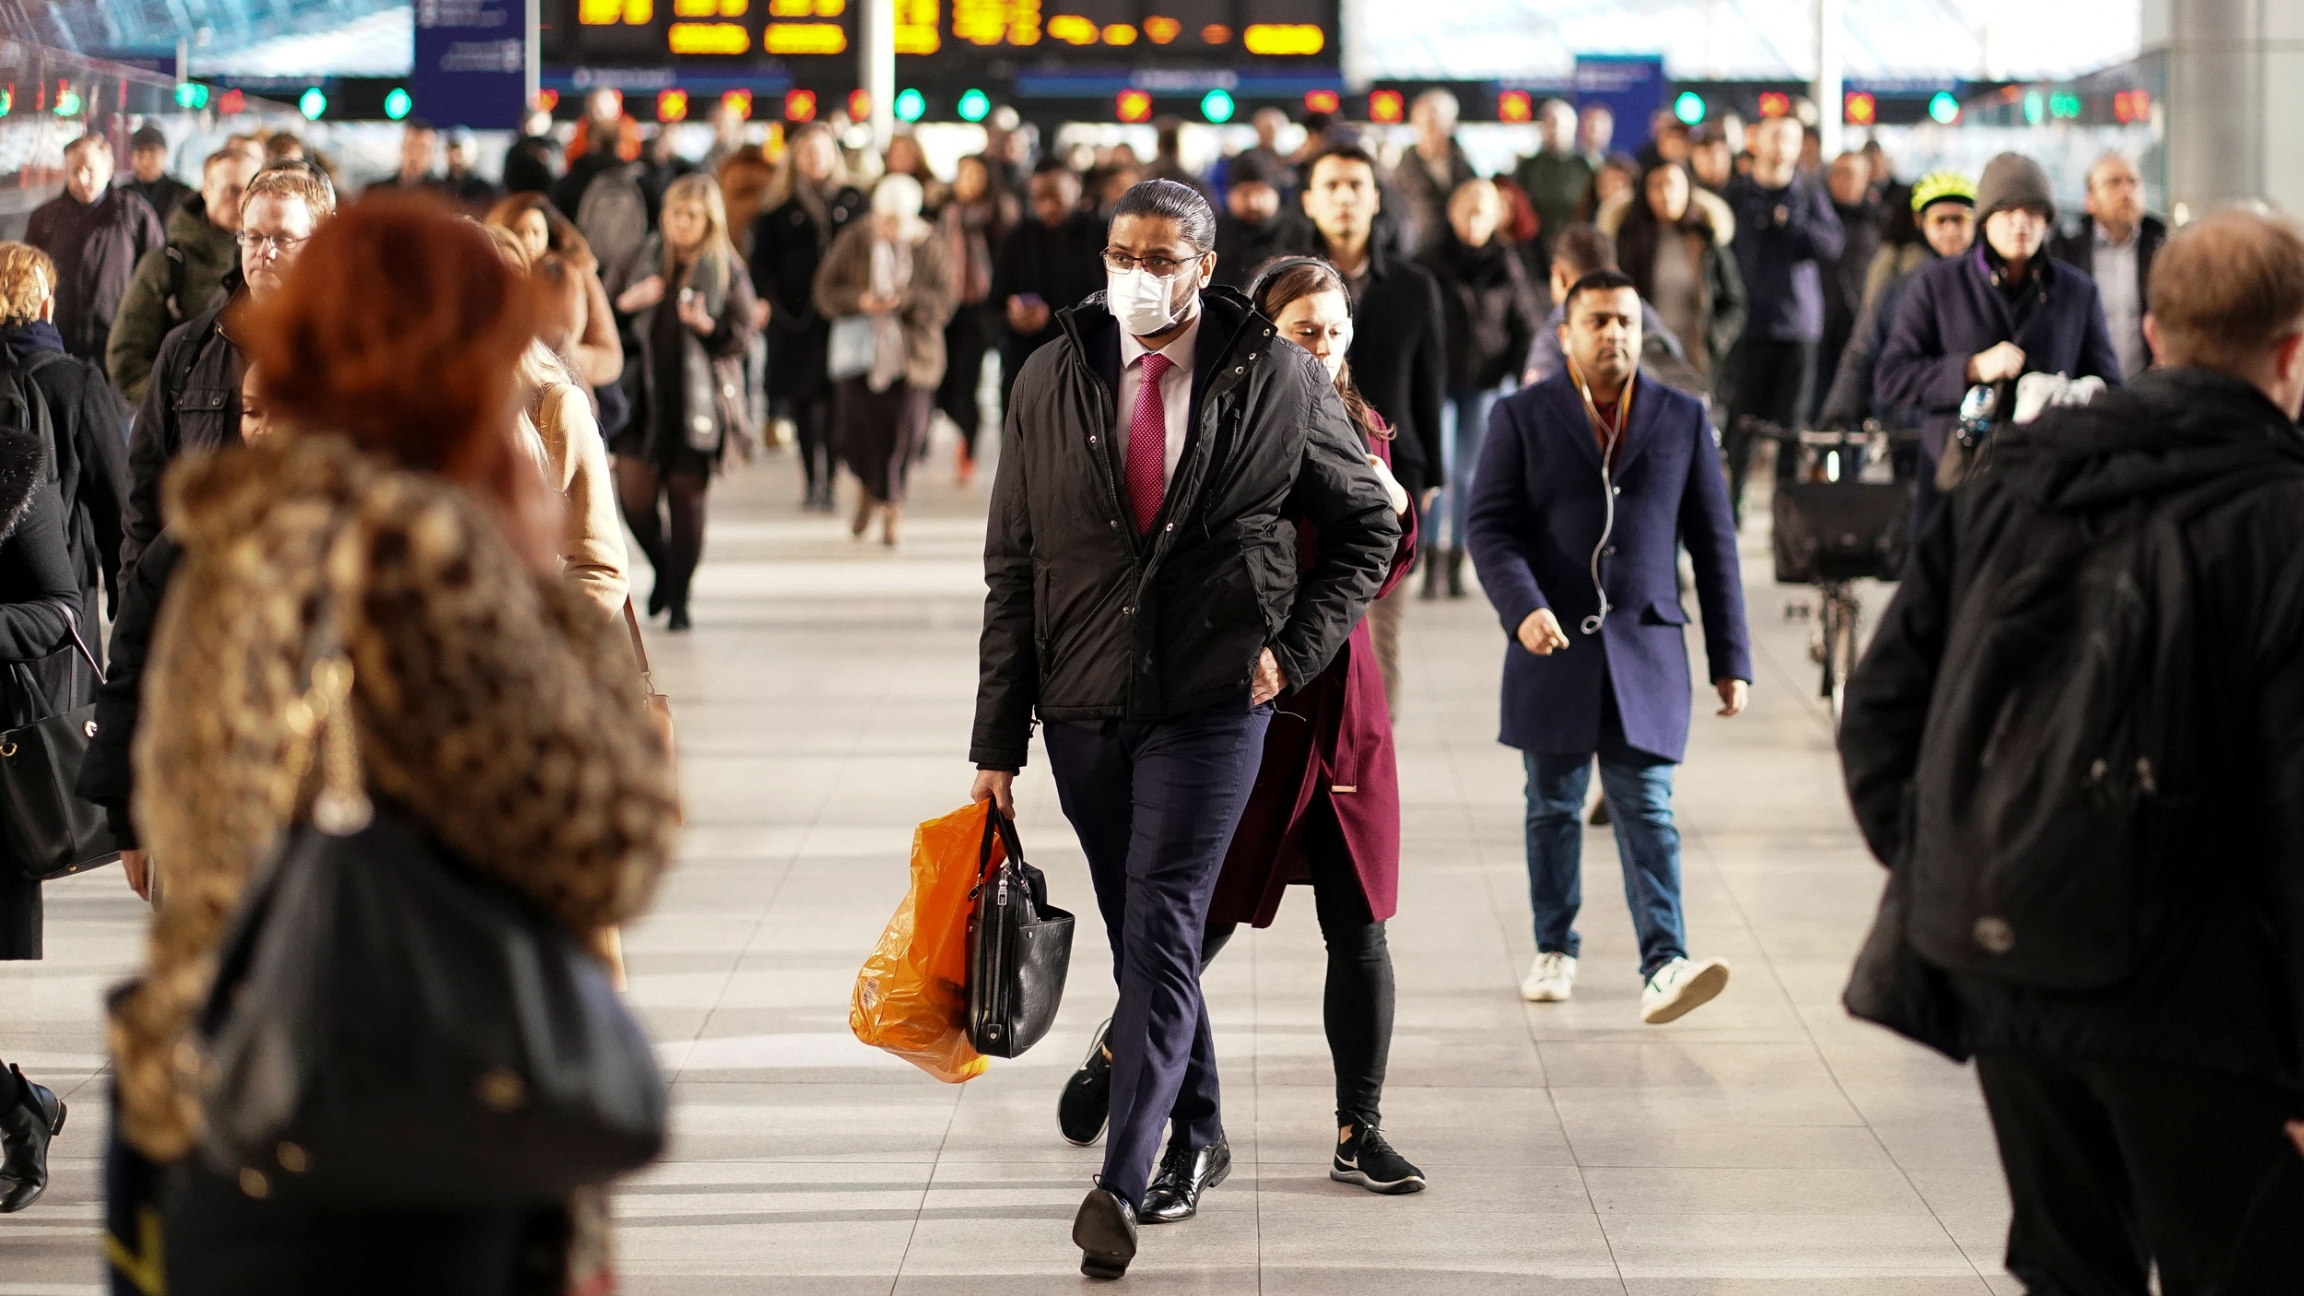 A large crowd of people are seen at Waterloo station with a man in the center of the frame wearing a face mask.